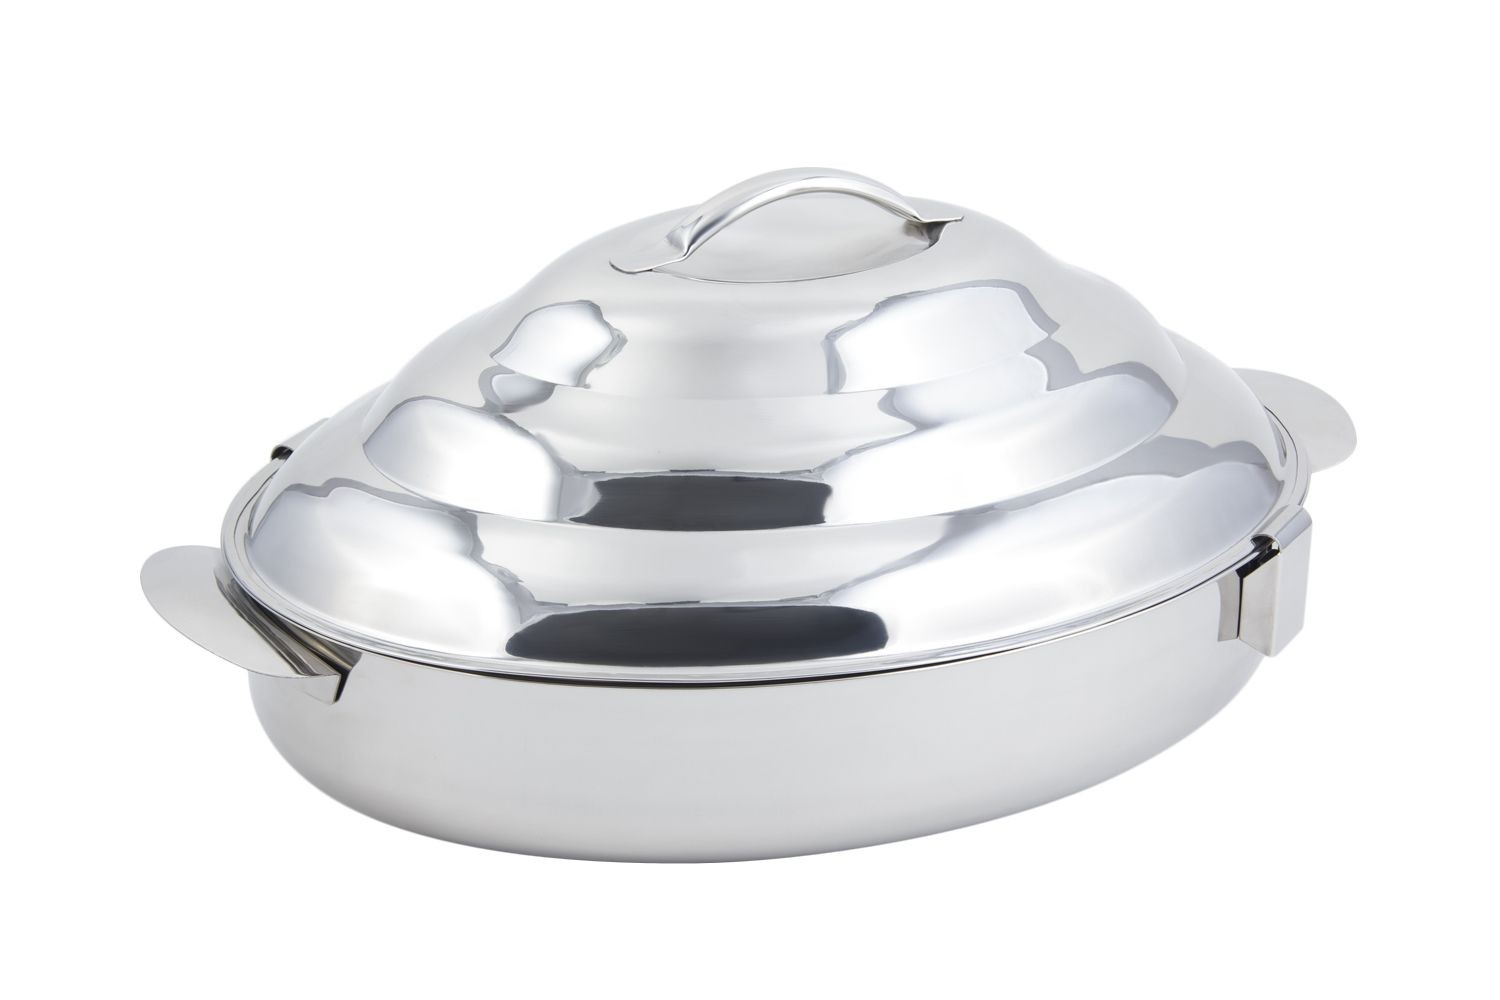 "Bon Chef 61279 Stainless Steel Double Wall Oval Insulated Server with Locking Lid, 23 1/4"" x 15 1/4"" x 10"""